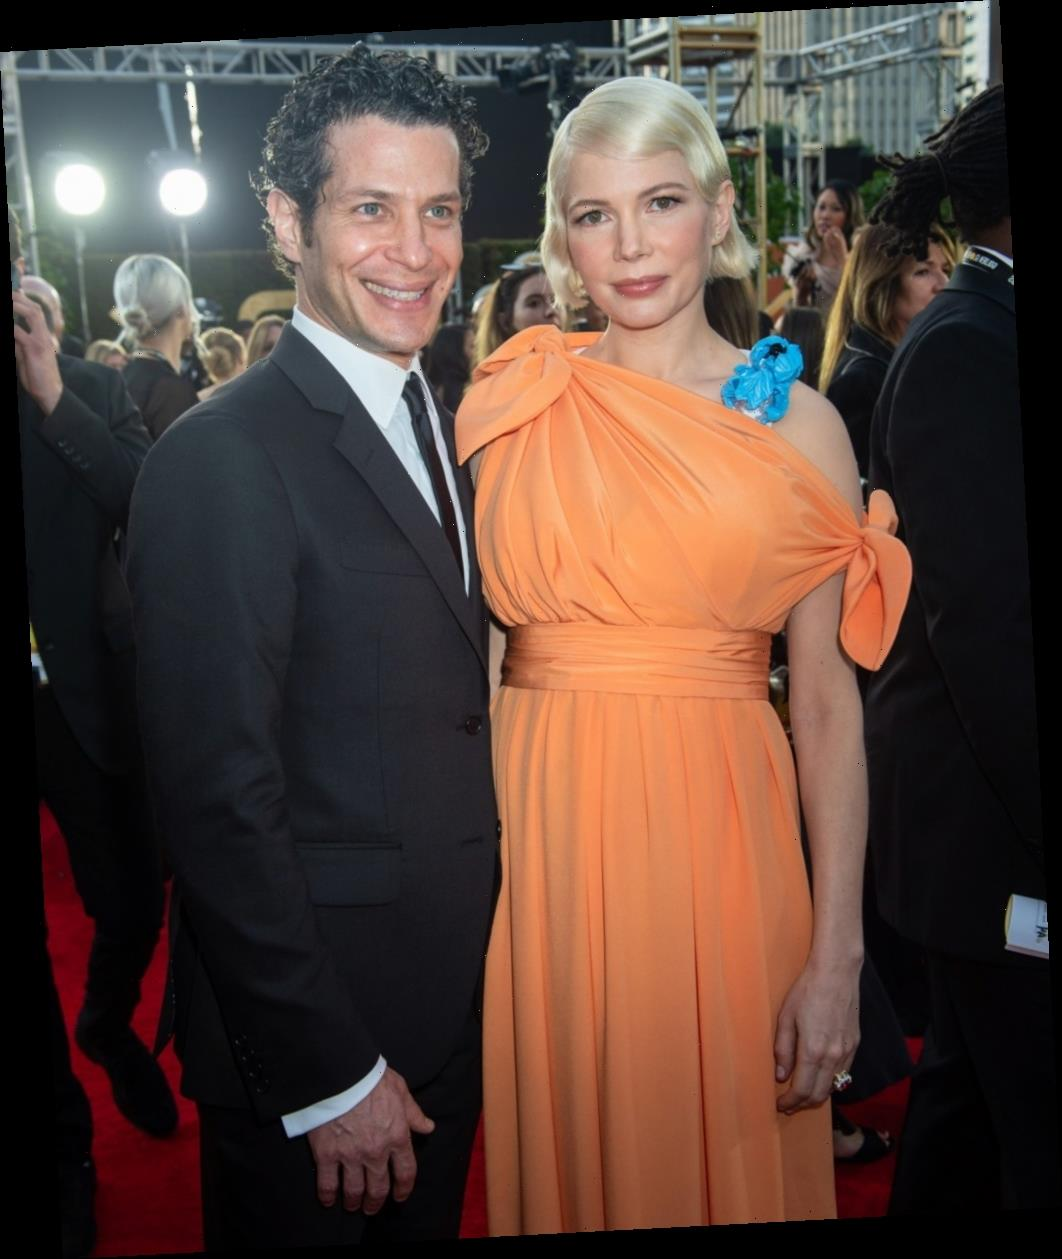 Michelle Williams & Thomas Kail quietly got married at some point in the past month